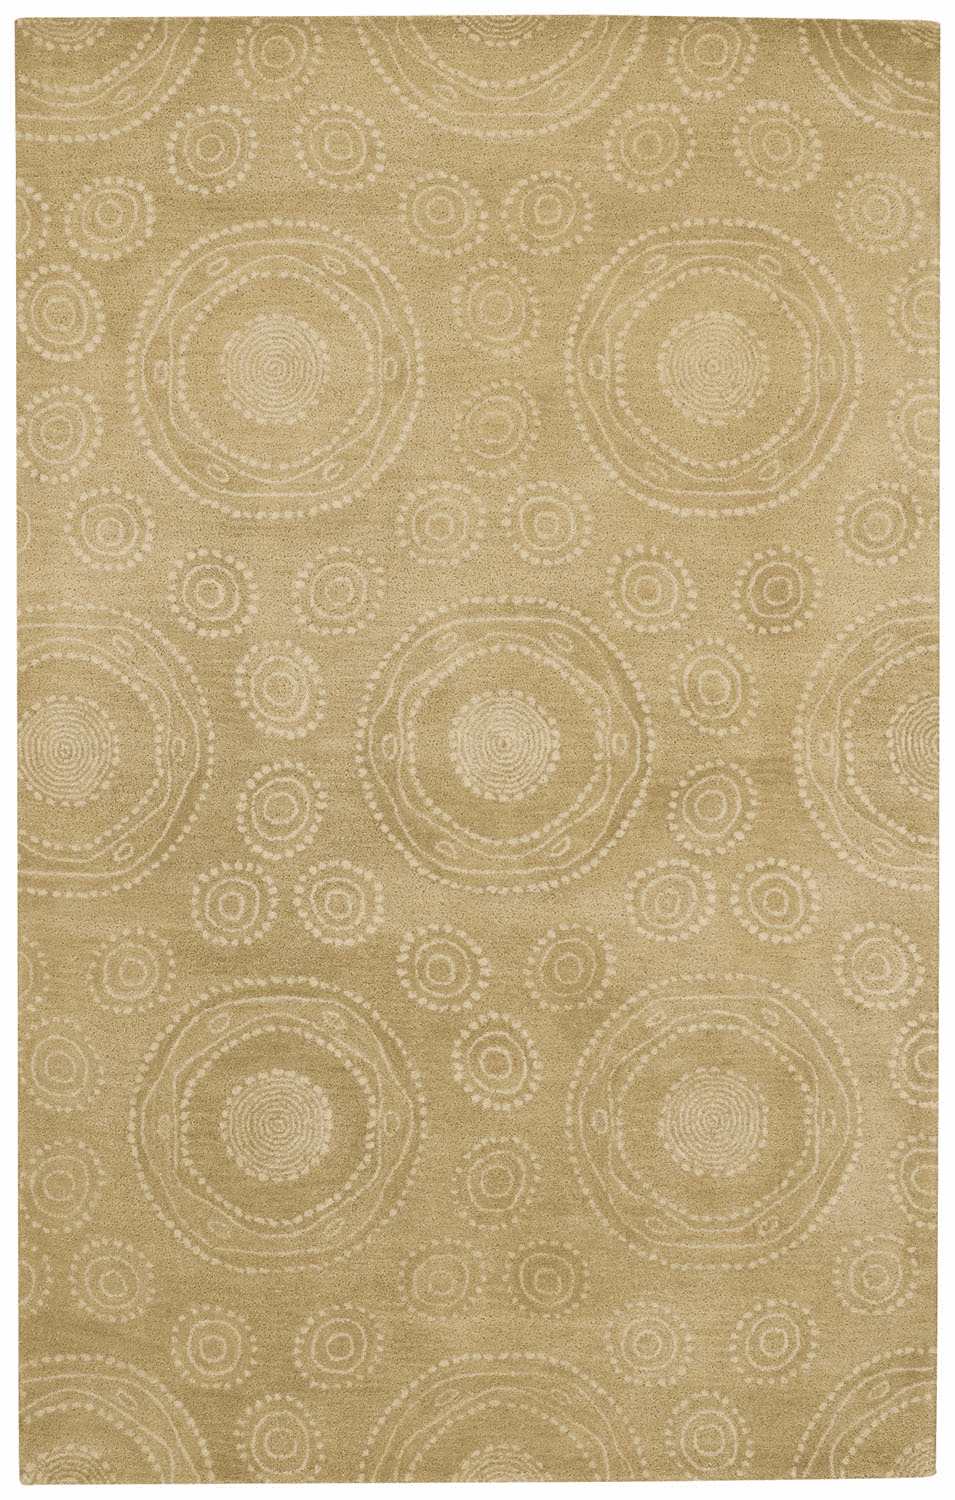 Hand Tufted Wheat Rug